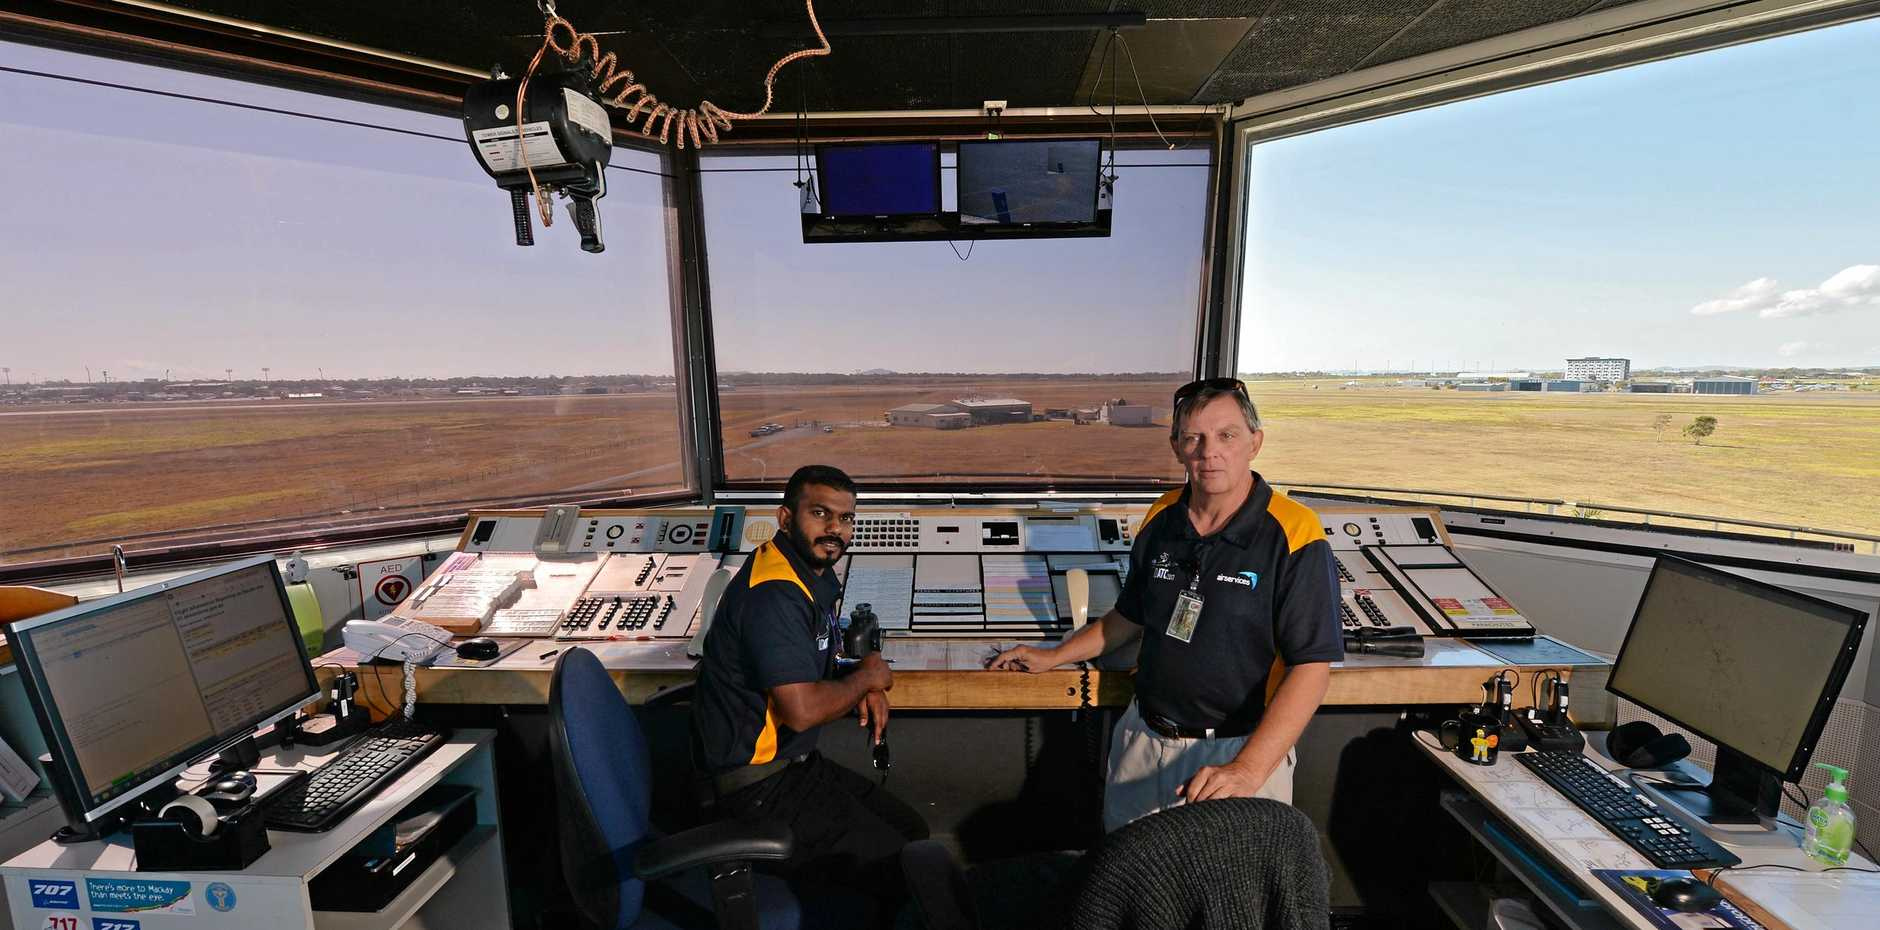 Mackay Airport control tower. Air traffic controllers Prashneel Chand and Allan Maddison